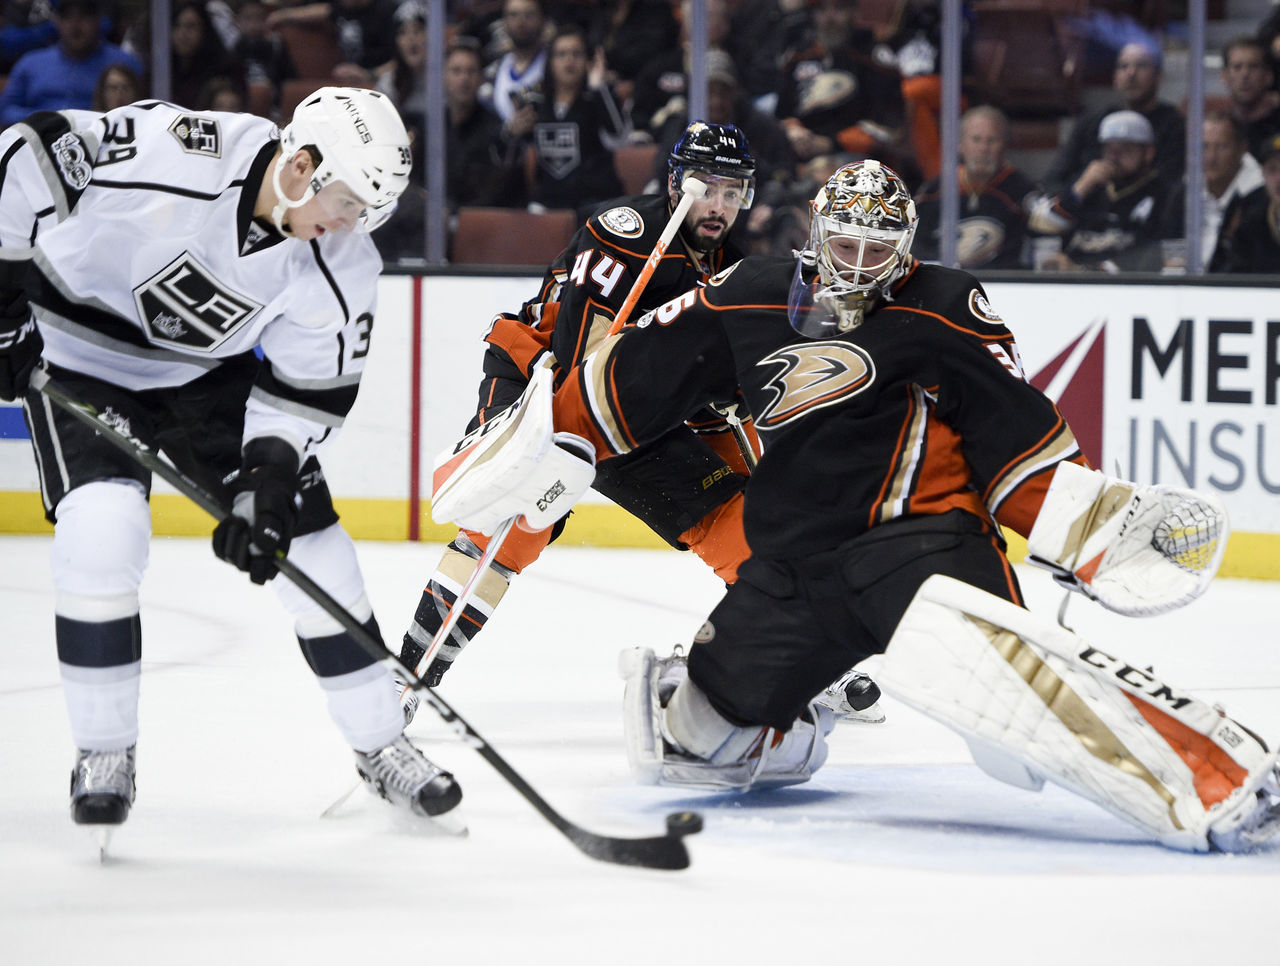 Cropped 2017 02 20t044002z 1066541314 nocid rtrmadp 3 nhl los angeles kings at anaheim ducks